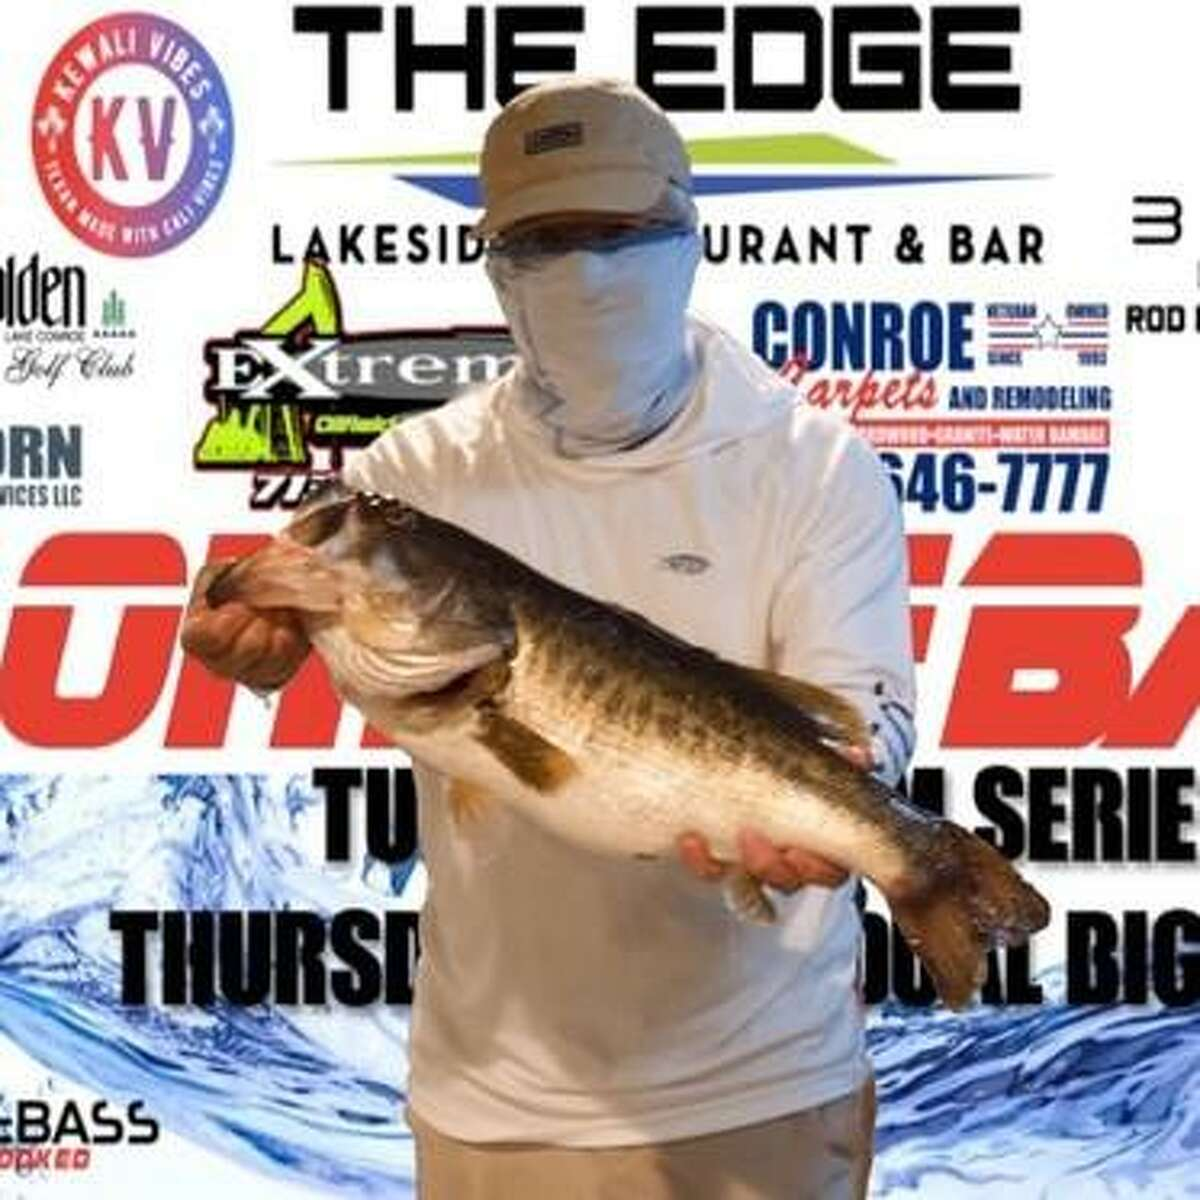 John Northcutt (pictured) and Jack Northcutt came in second place in the CONROEBASS Tuesday Night tournament with a stringer weight of 11.23 pounds.